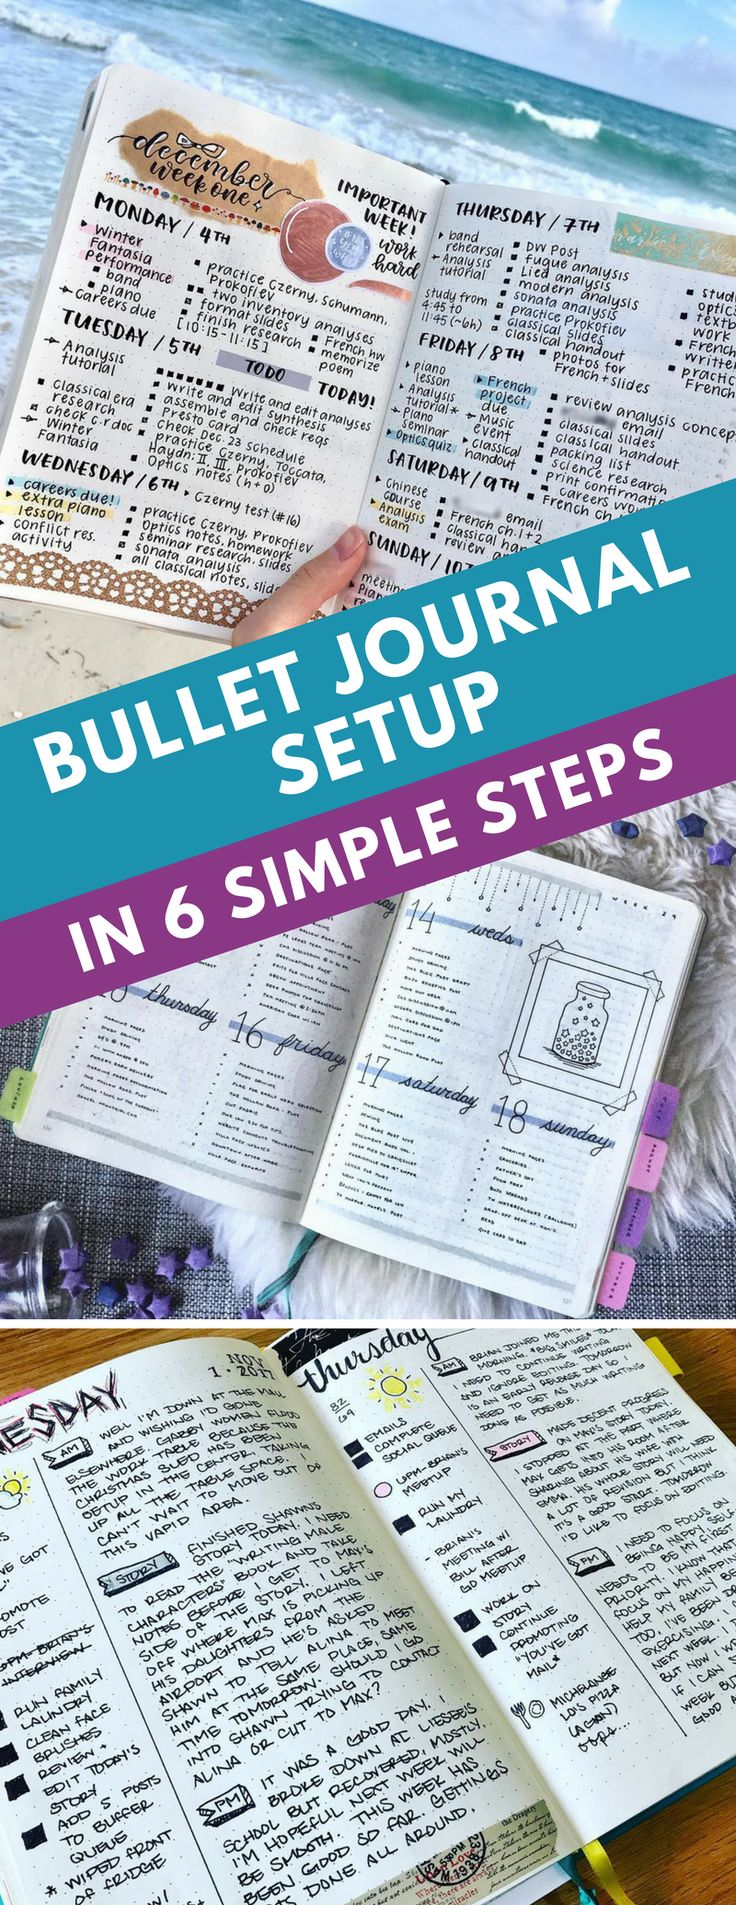 Bullet Journal Setup - Find out how to set up your Bullet Journal so that you can free your mind from trying to remember all of those lists and responsibilities and focus on getting things done! #bujo #bulletjournal #planner